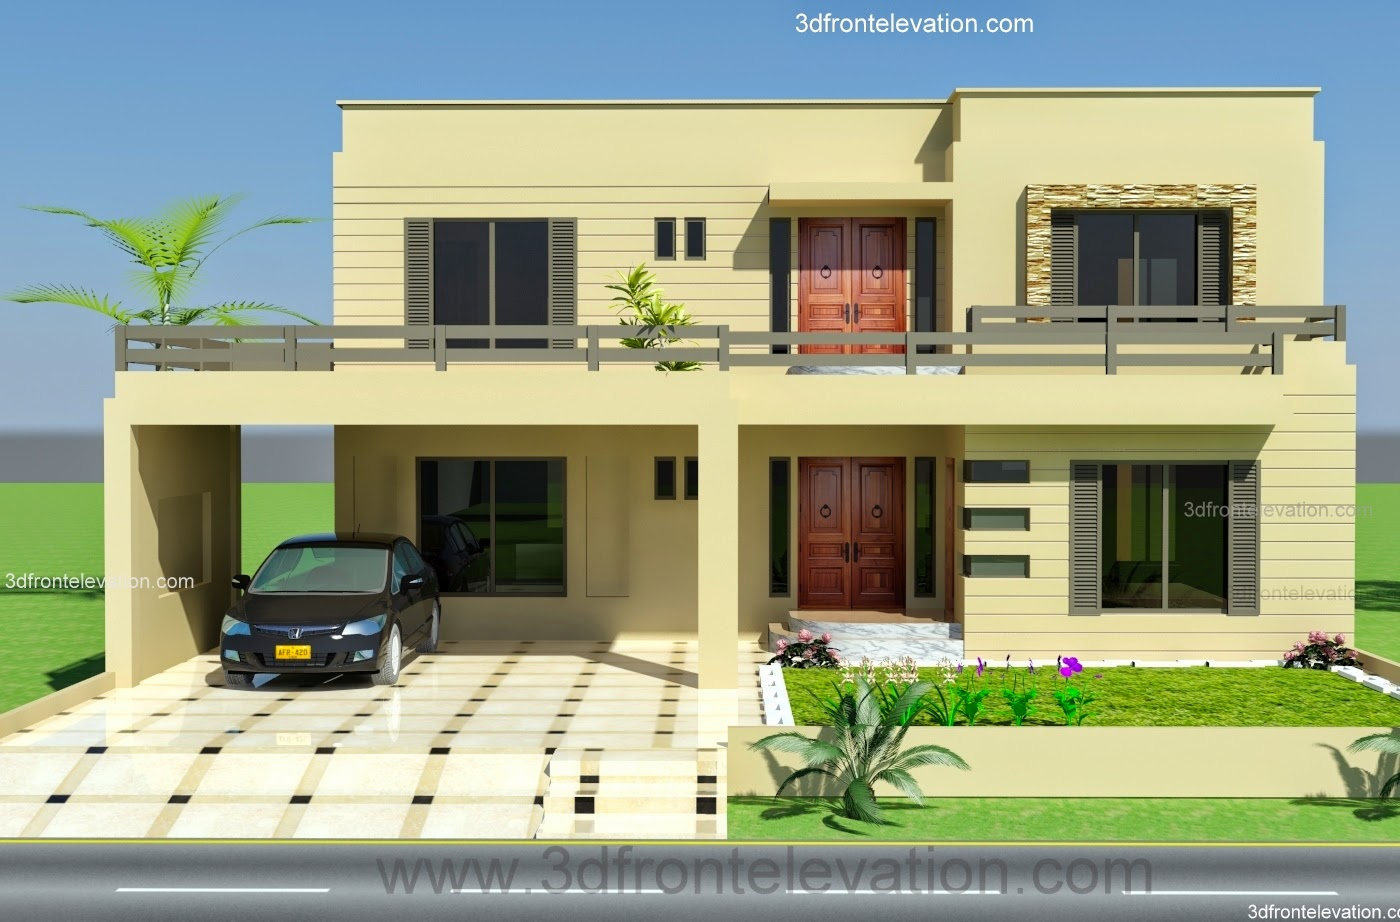 Front Elevation Of The Houses : D front elevation design house kanal